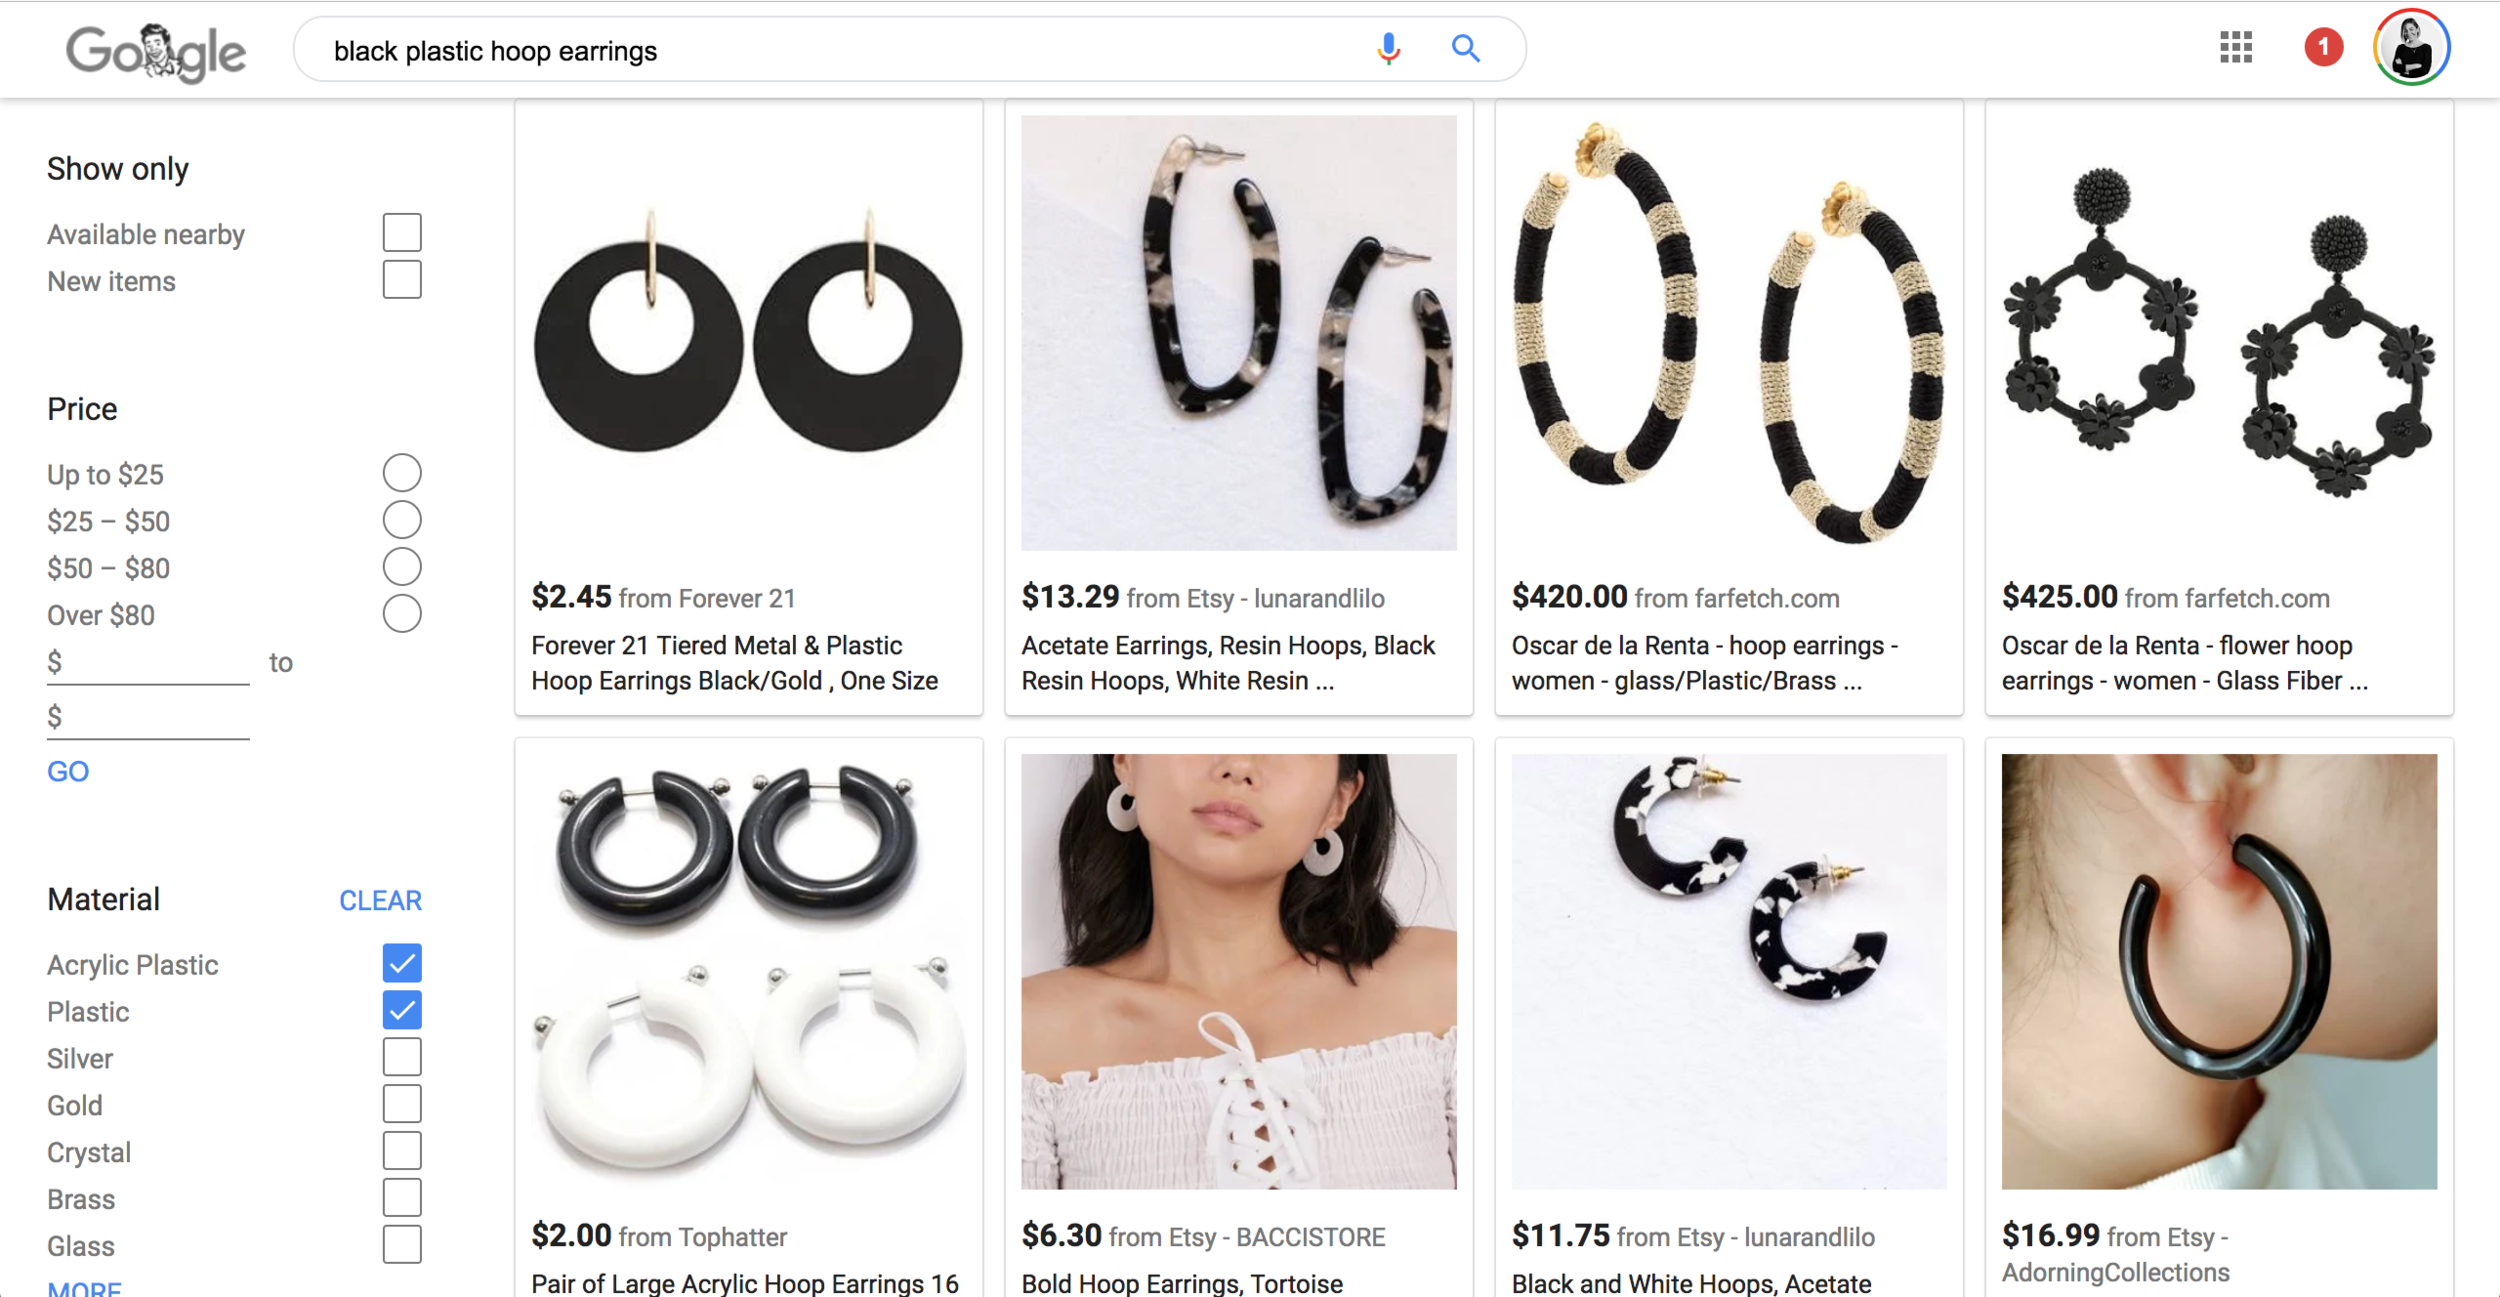 Google search large black hoop earrings